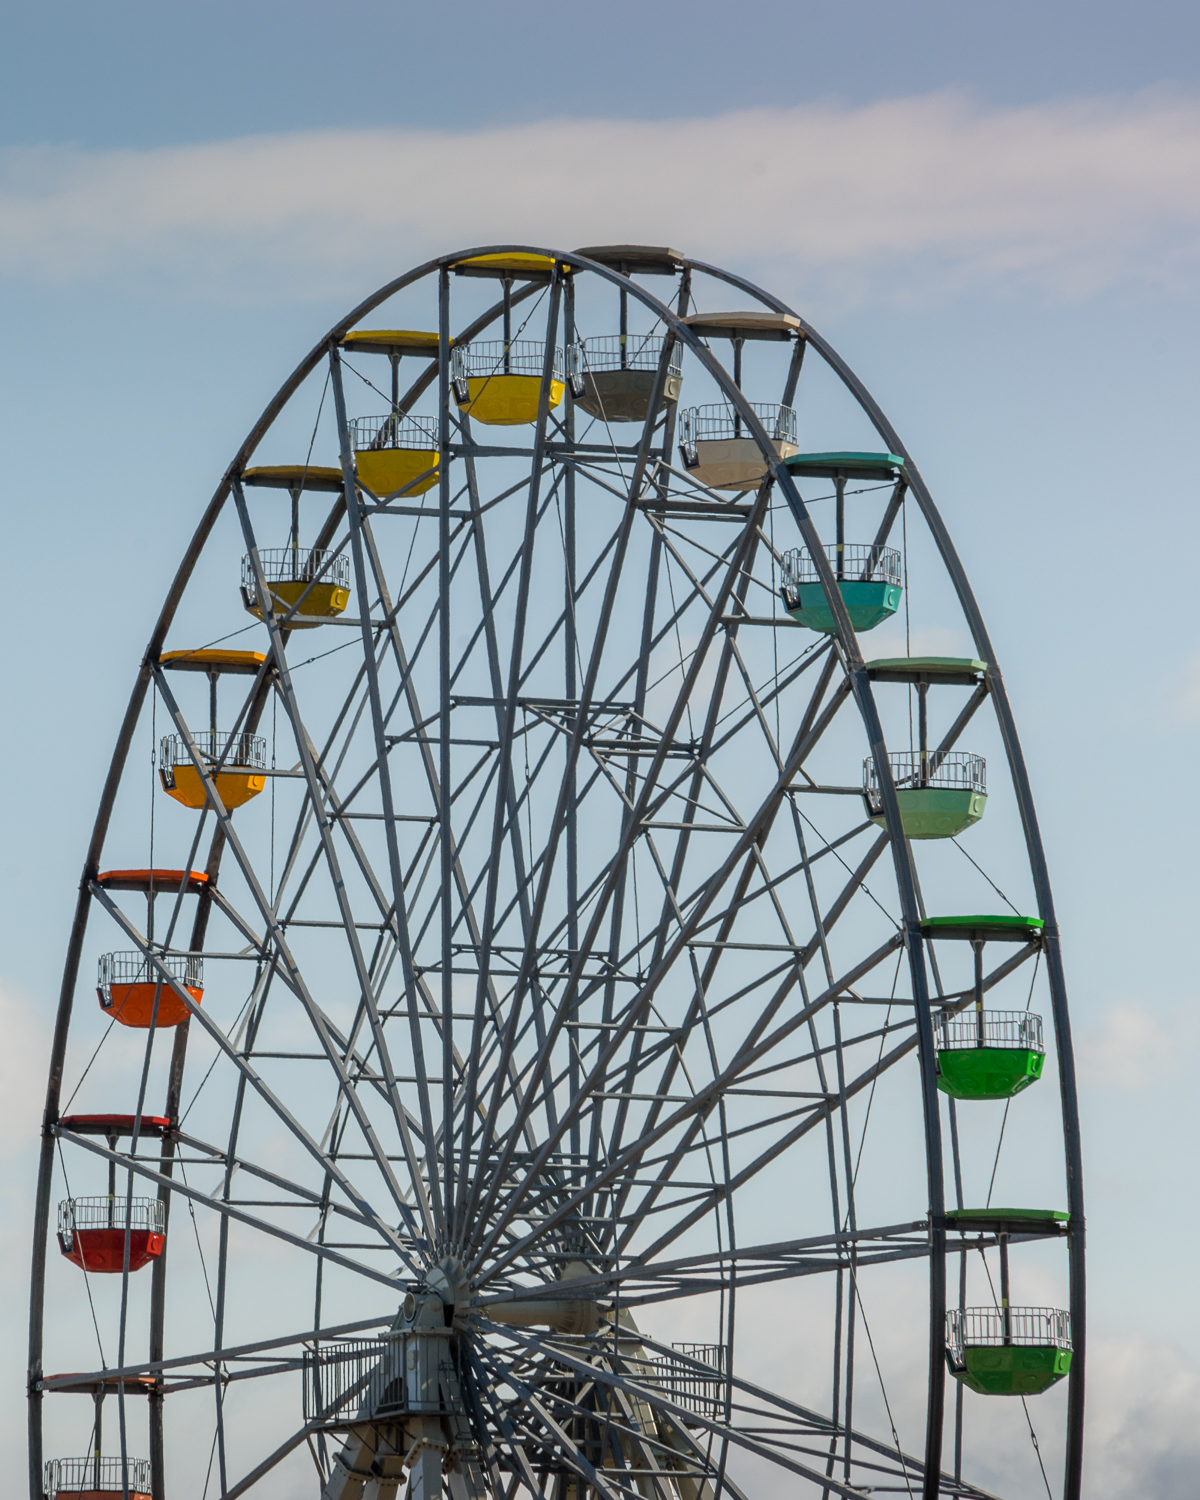 Dreamland big wheel, Margate